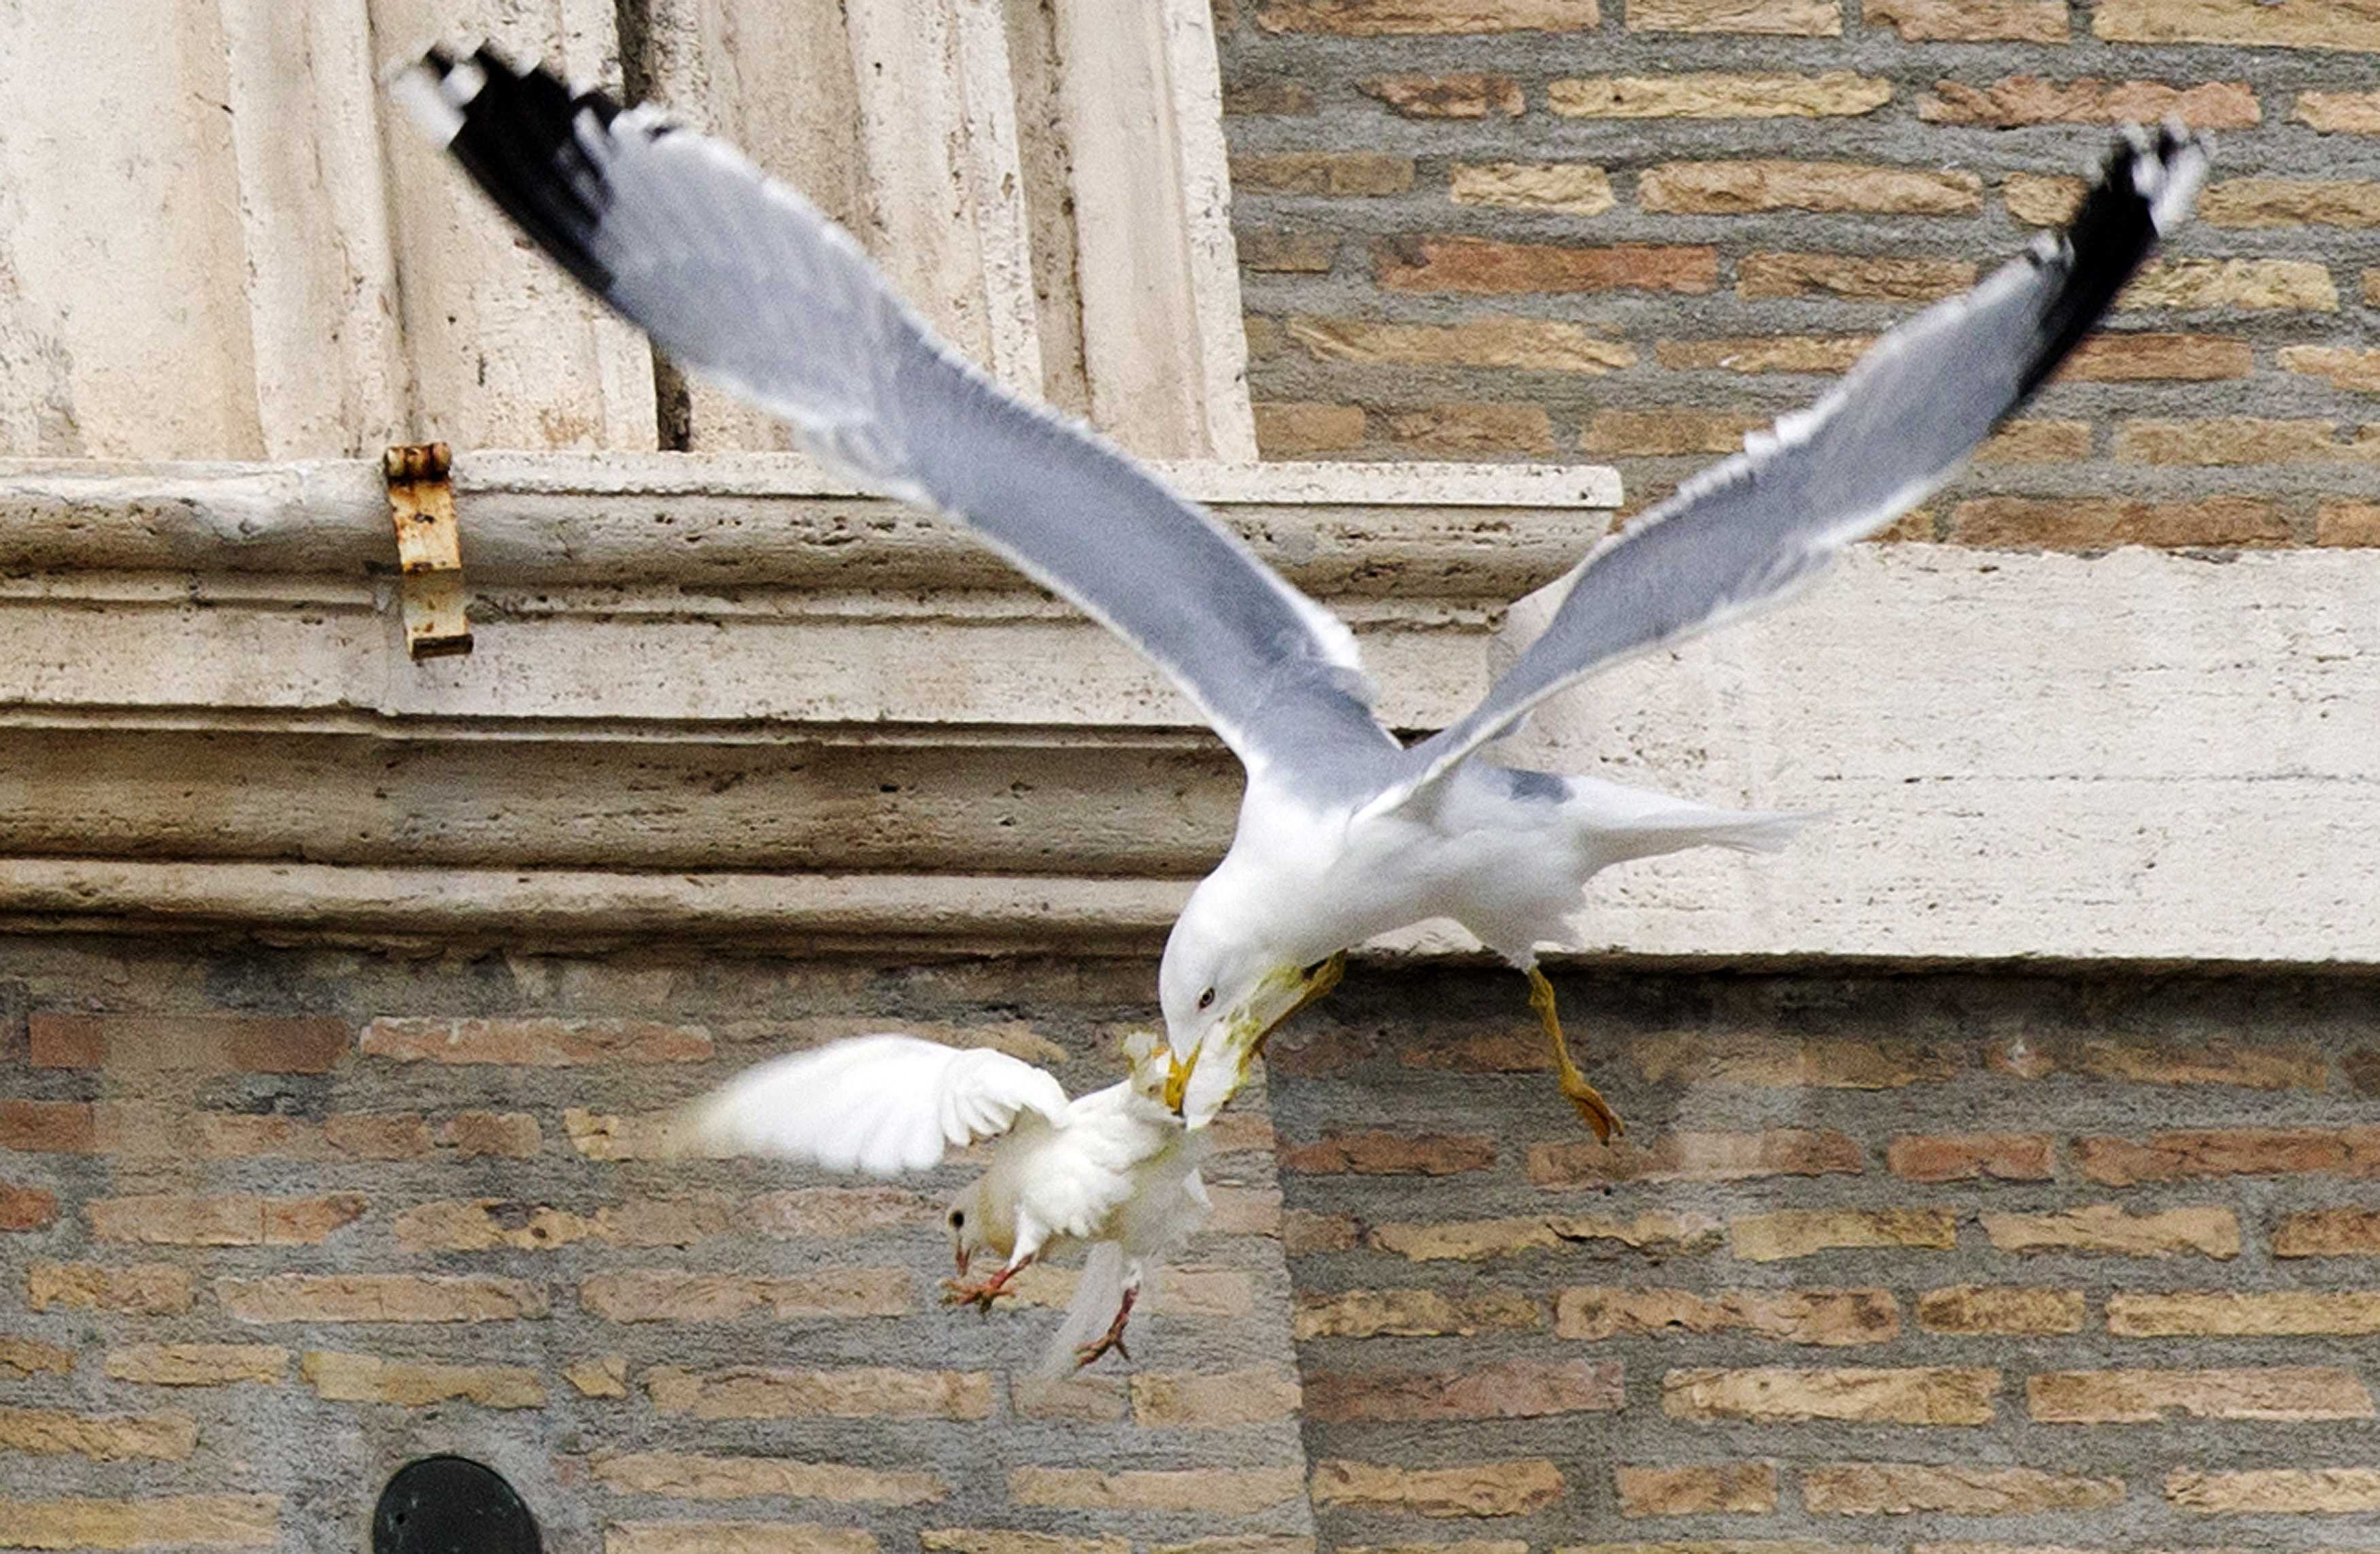 A dove released during an Angelus prayer conducted by Pope Francis is attacked by a seagull in Saint Peter's square at the Vatican, Jan. 26, 2014.